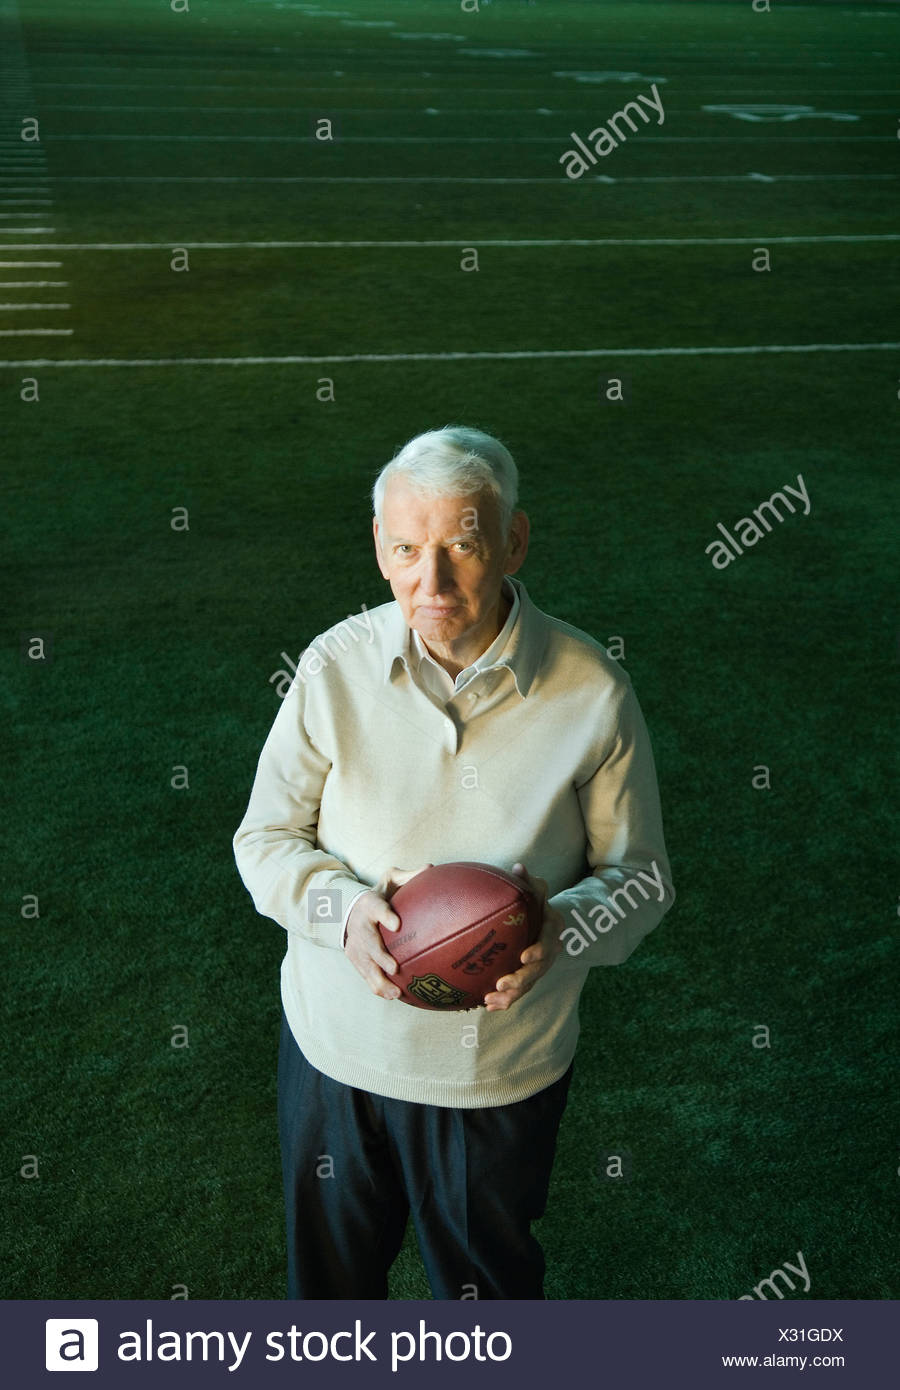 Dan Rooney owner of the Pittsburgh Steelers was nominated ambassador to Ireland today by president Barack Obama at the White H - Stock Image